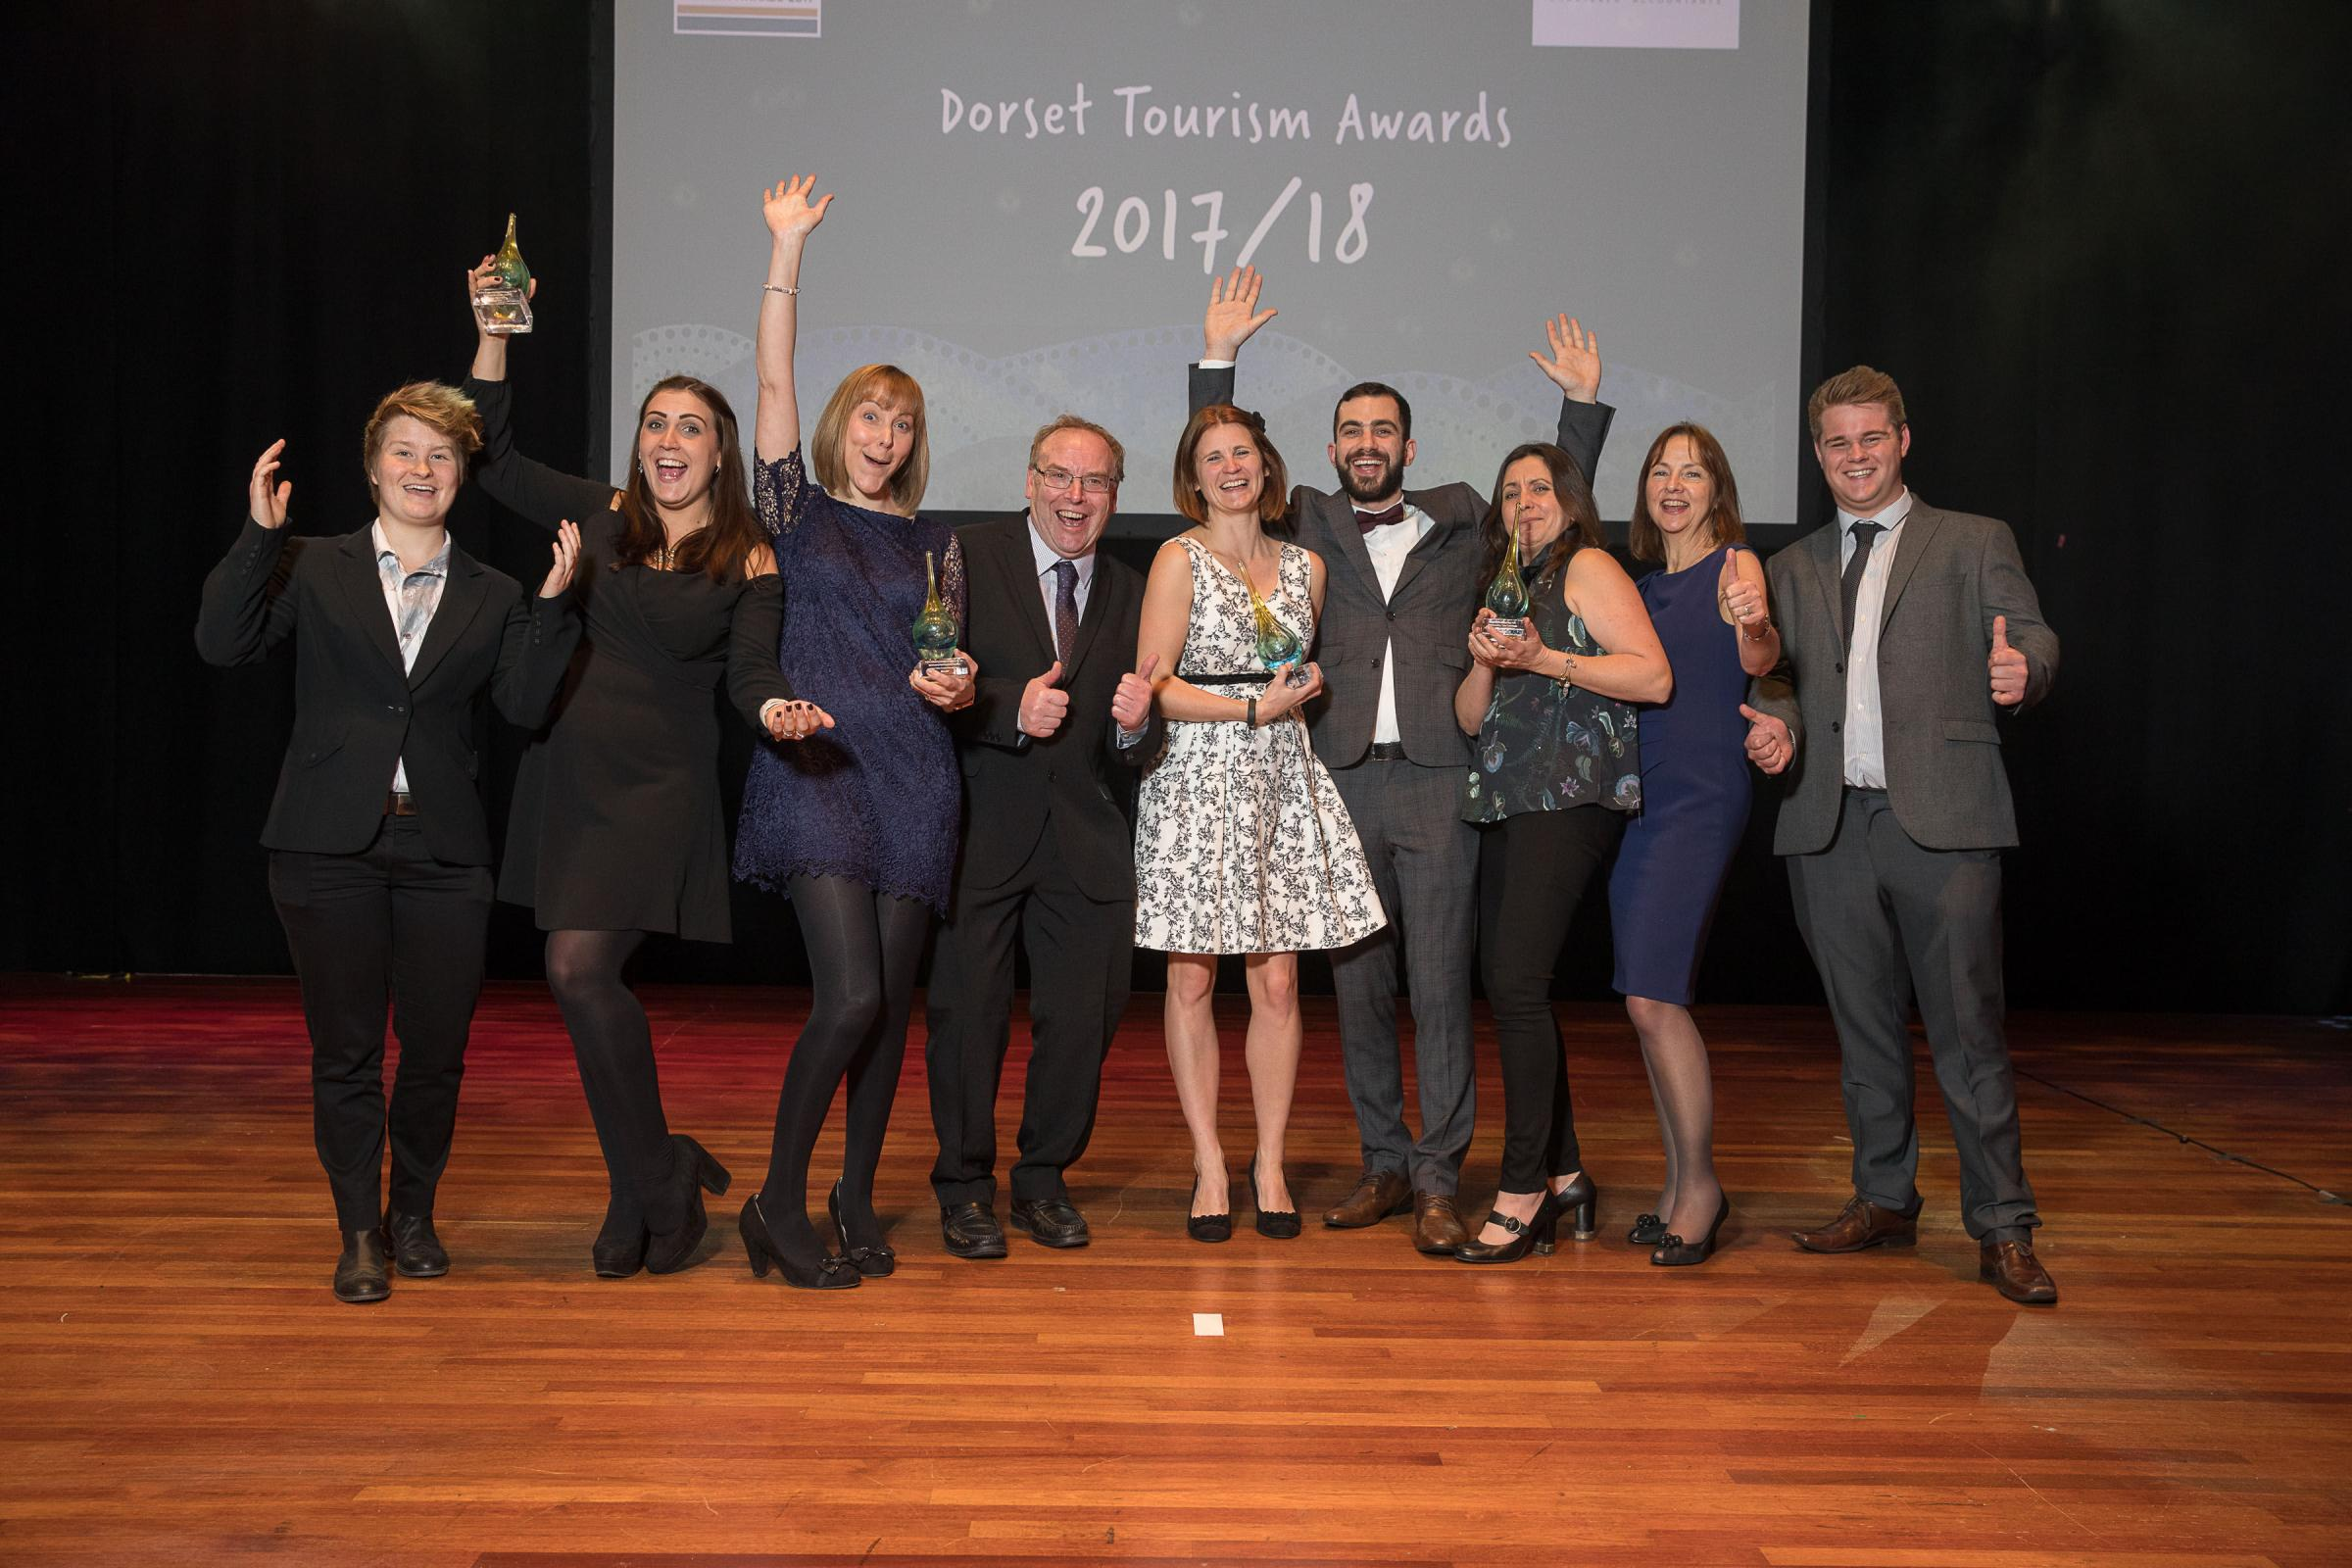 The Moors Valley County Park team at the Dorset Tourism Awards. Pictured Keeley Clayton, Mel Ewers, Jennifer Sutton, Doug King, Katie Davies, Karl Prince, Emma Reeks, Sally Norman and Ben Symes. Photo by Nick Williams Photography